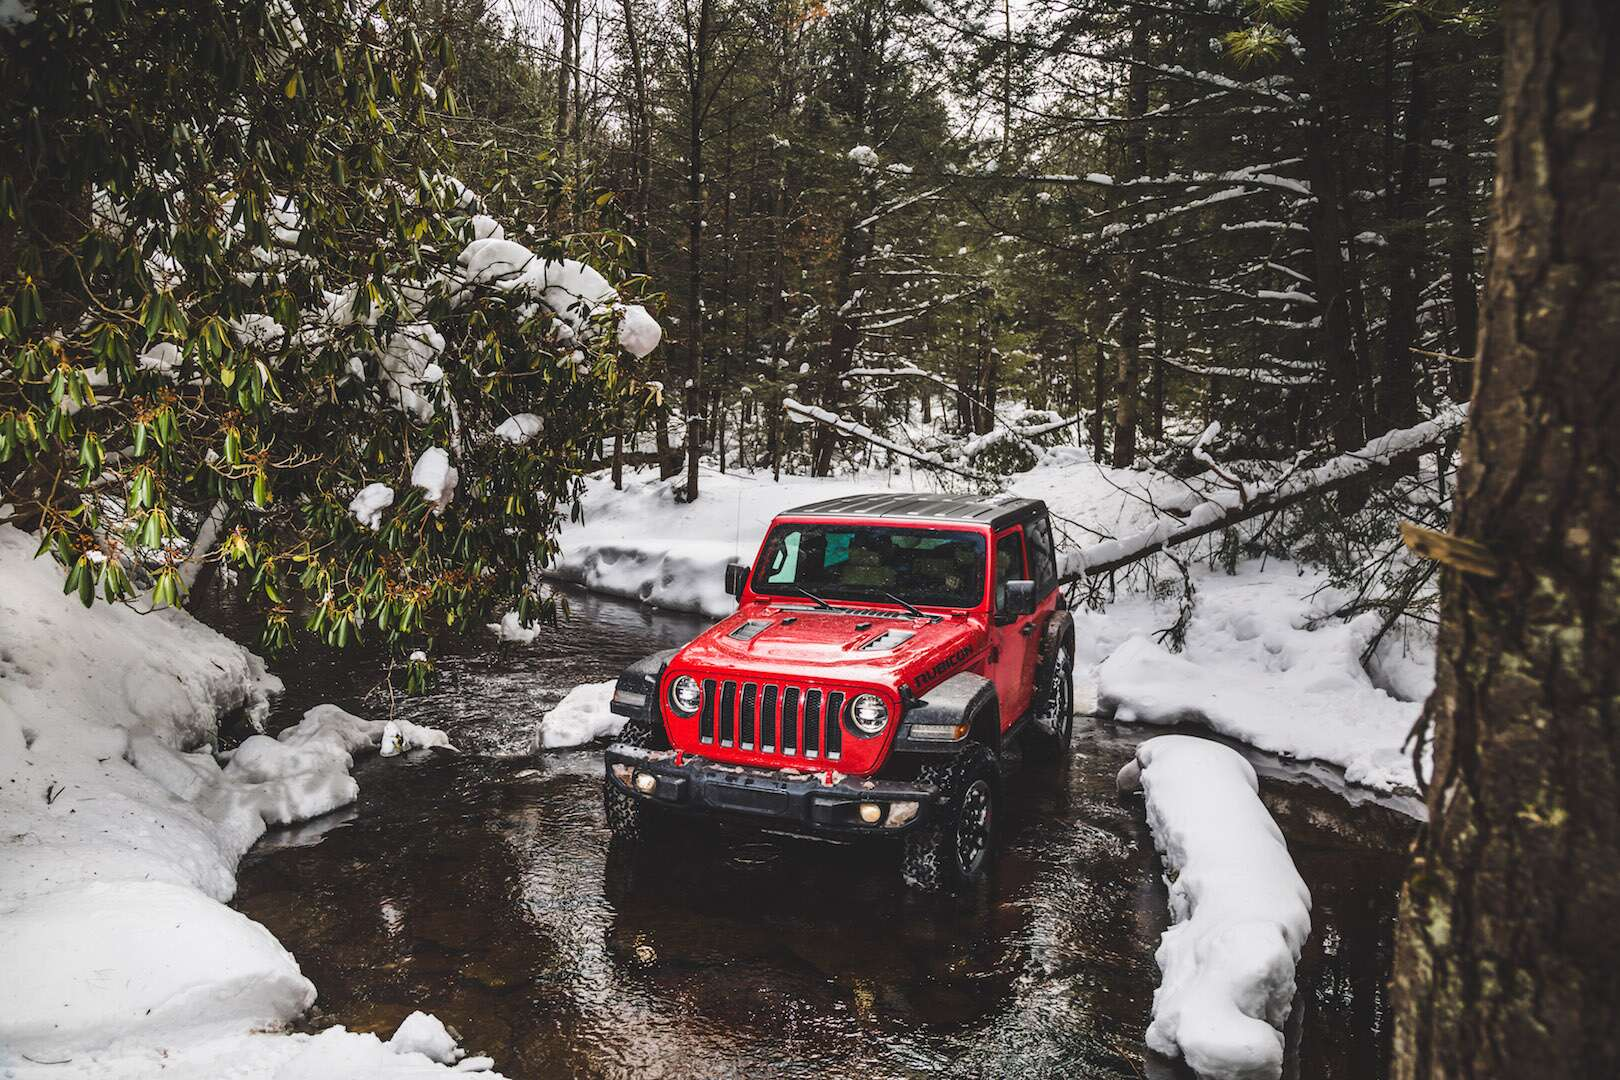 2018 Jeep Wrangler Rubicon Review: Taking a Winter Dip in ...